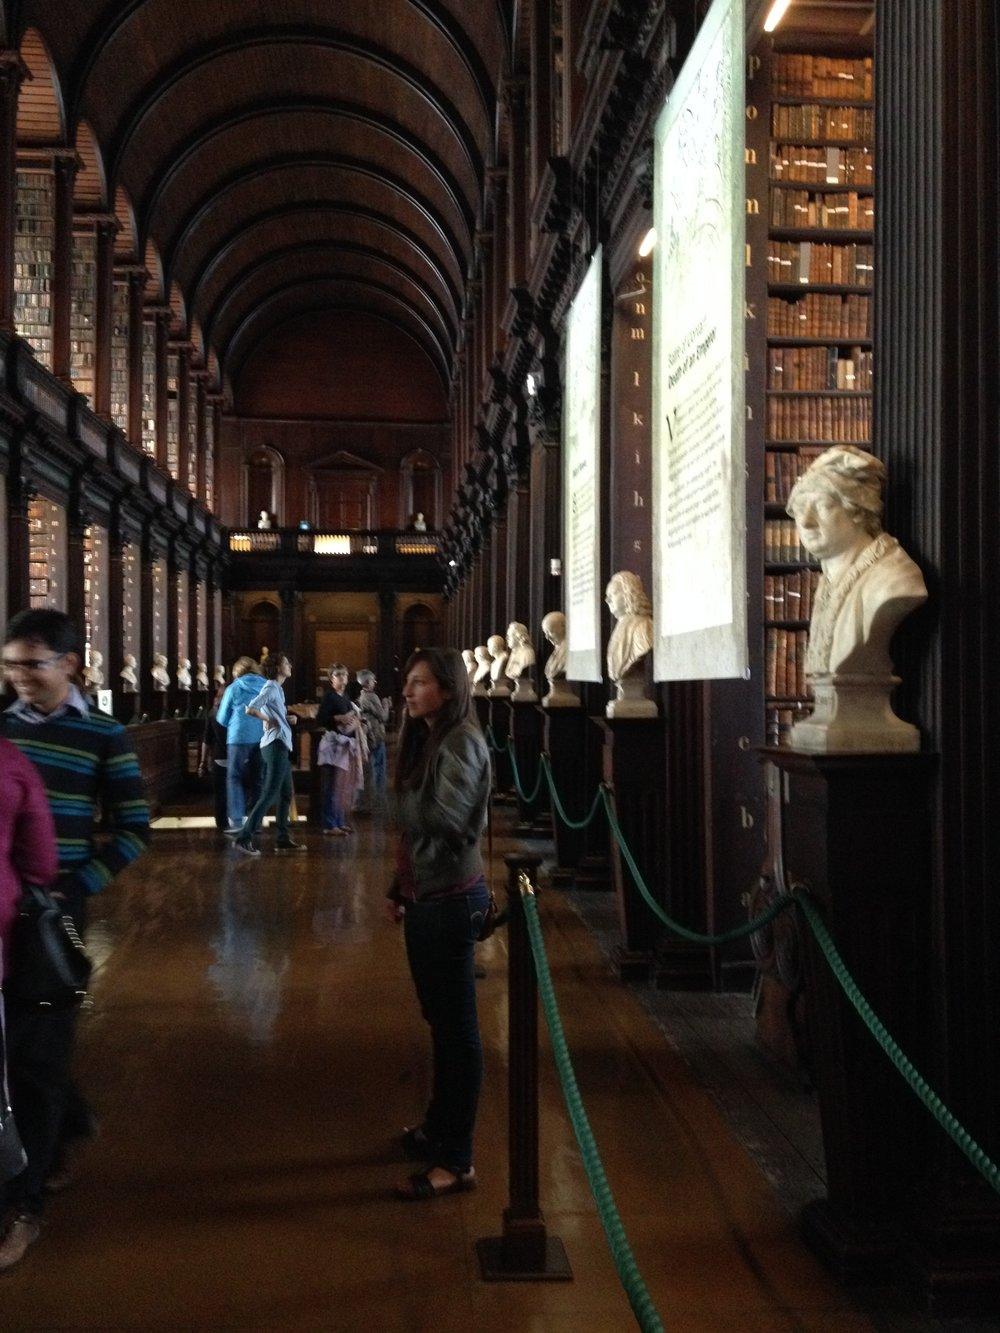 Emily's daughter, Rachel, admiring the Trinity Library in Dublin, Ireland.